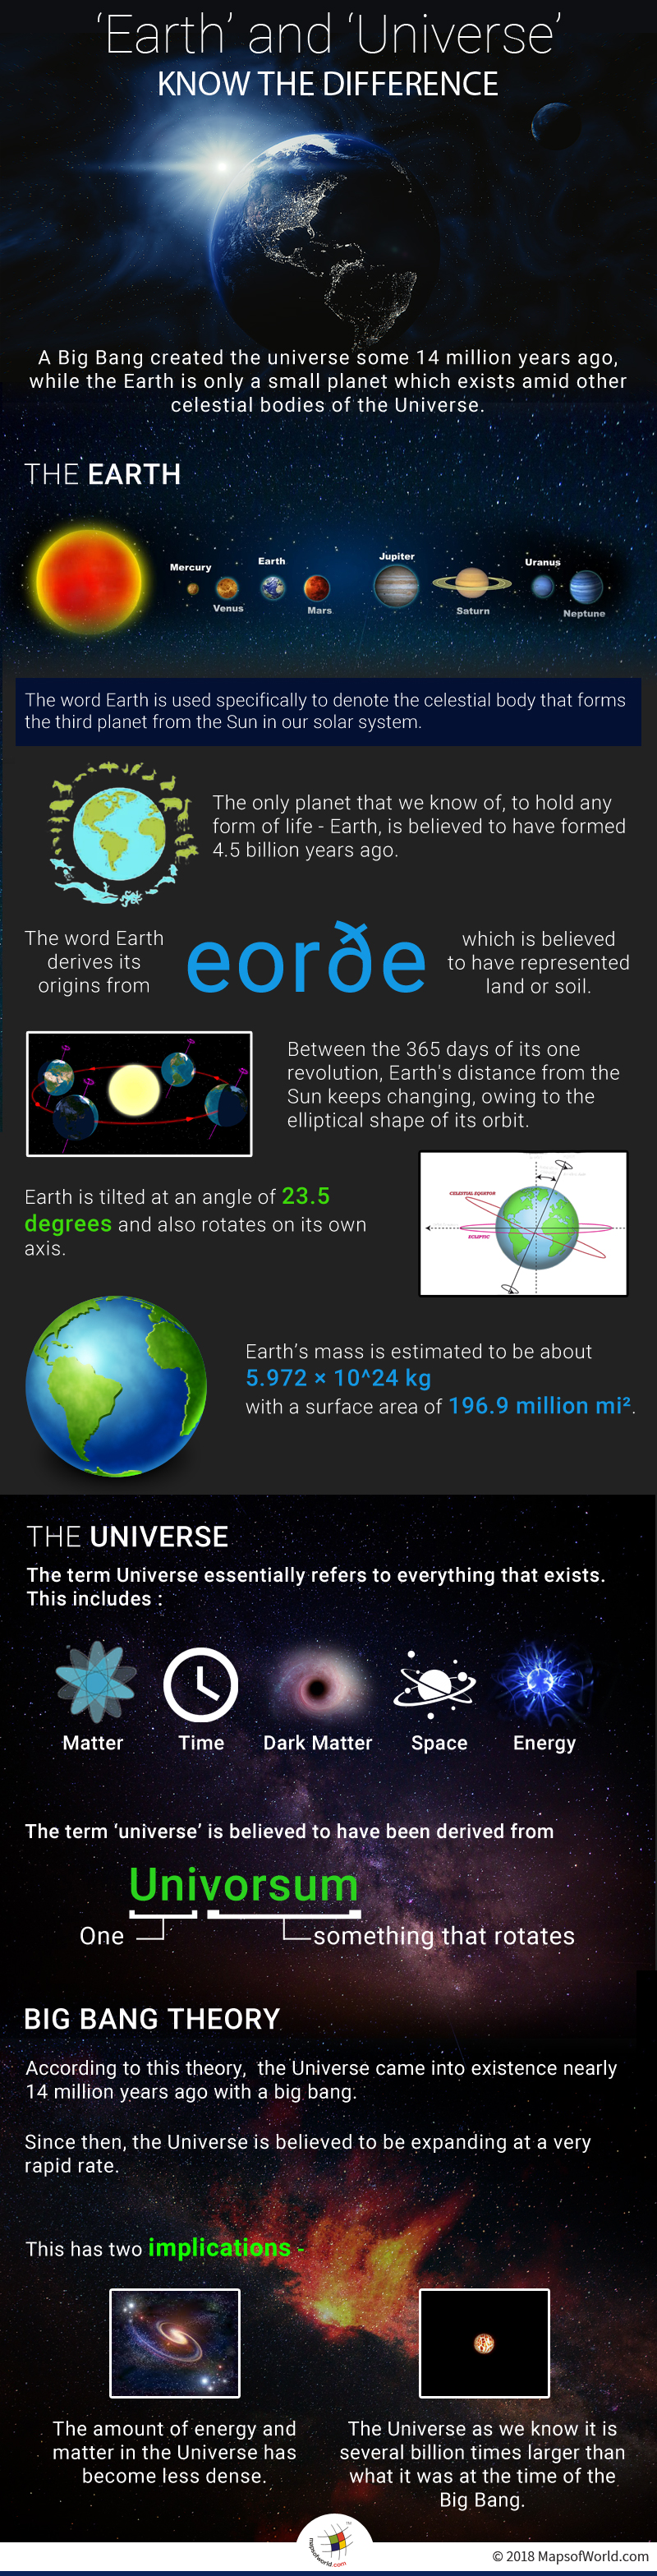 Infographic elaborating aspects of Earth and Universe